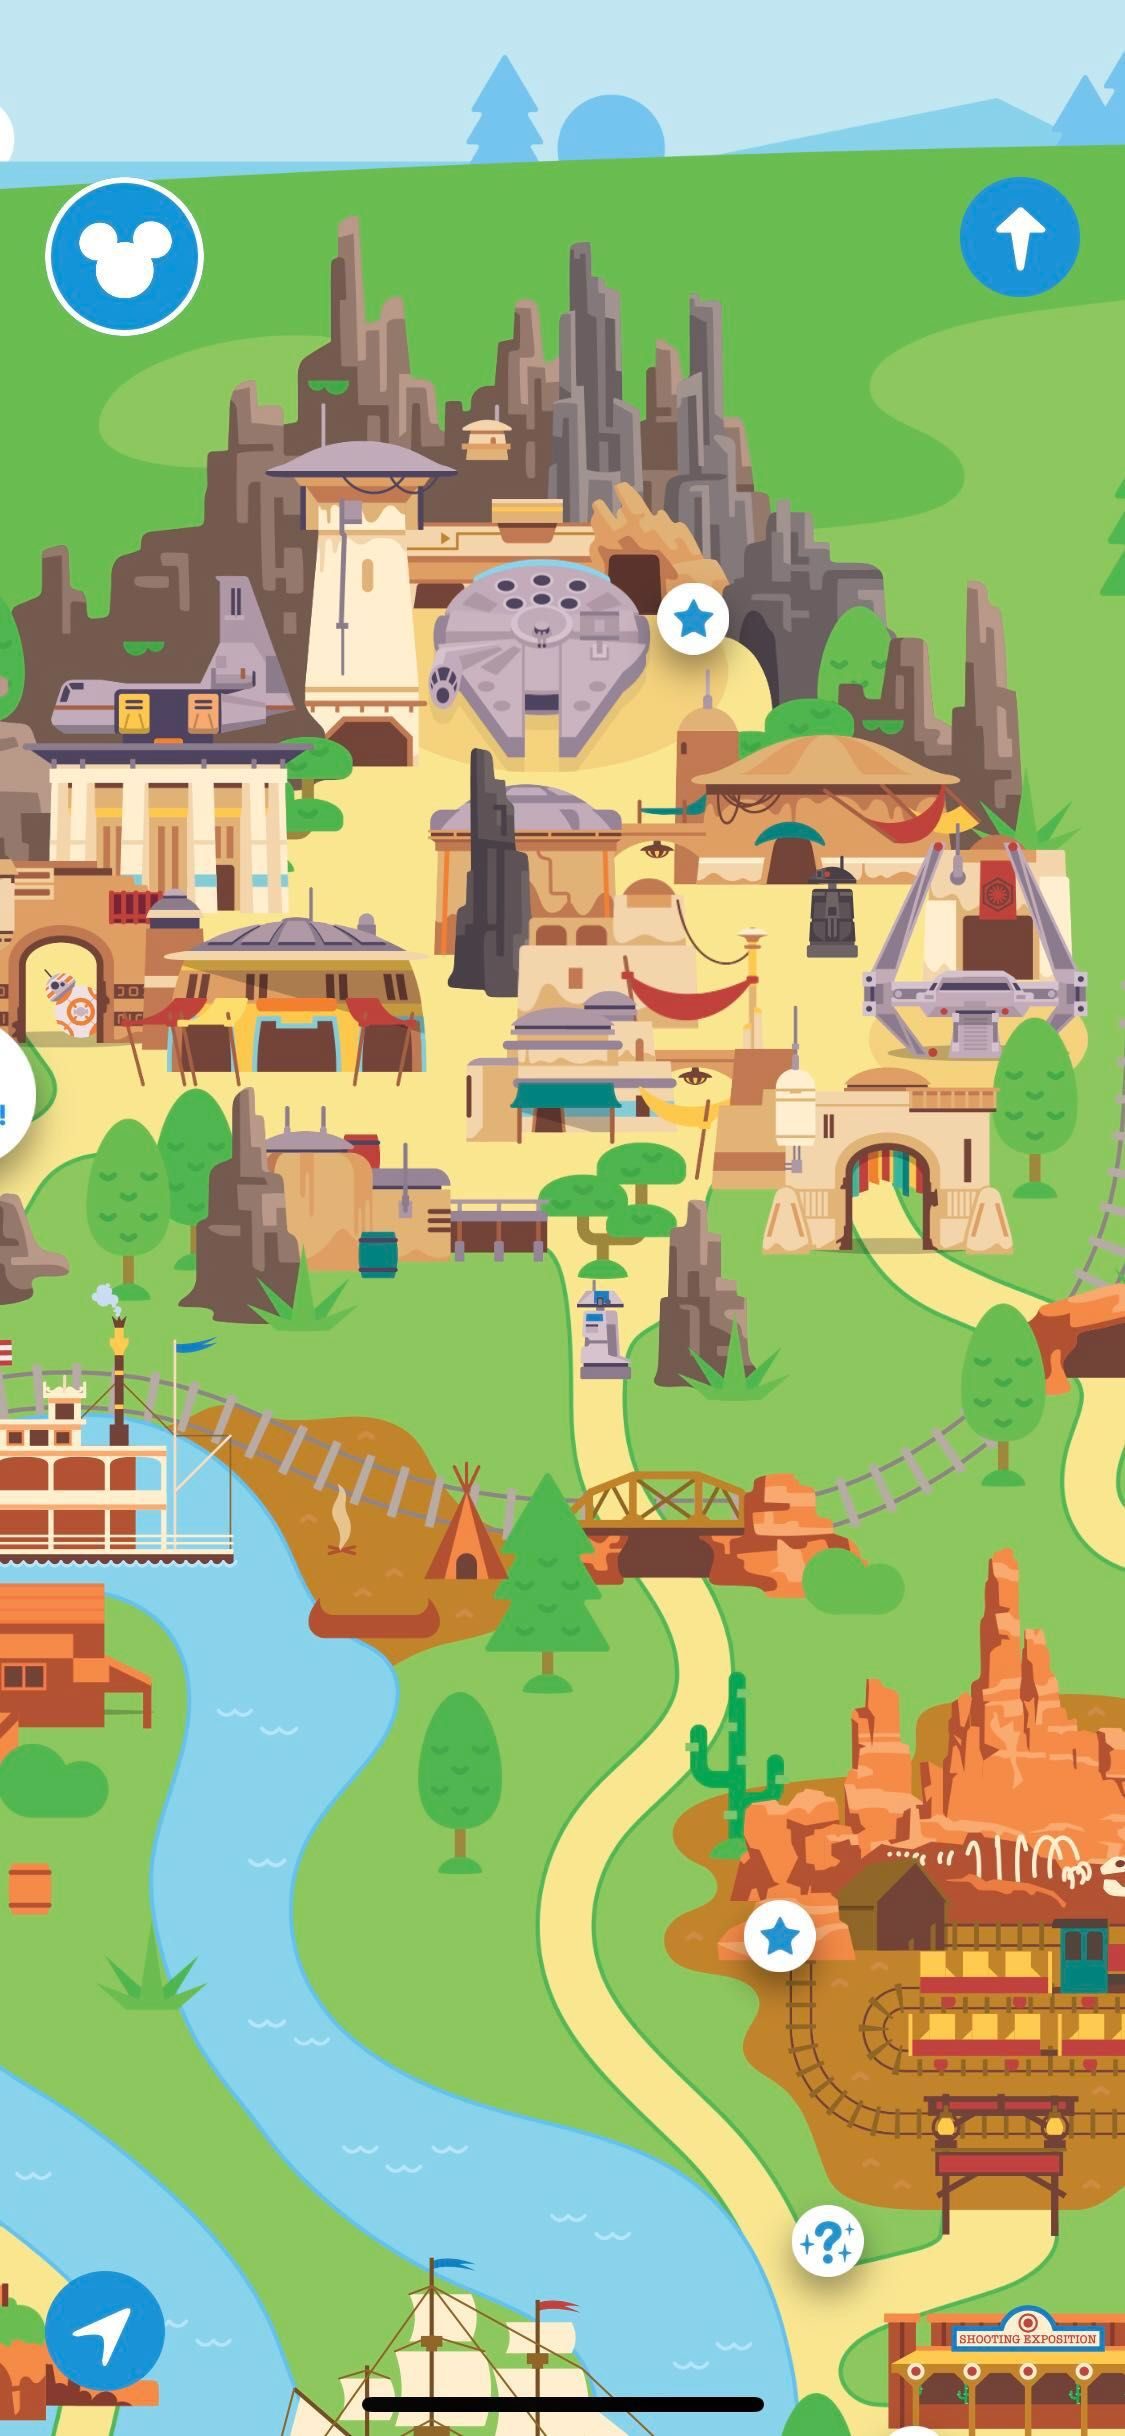 Play Disney Parks app with Galaxy's Edge features